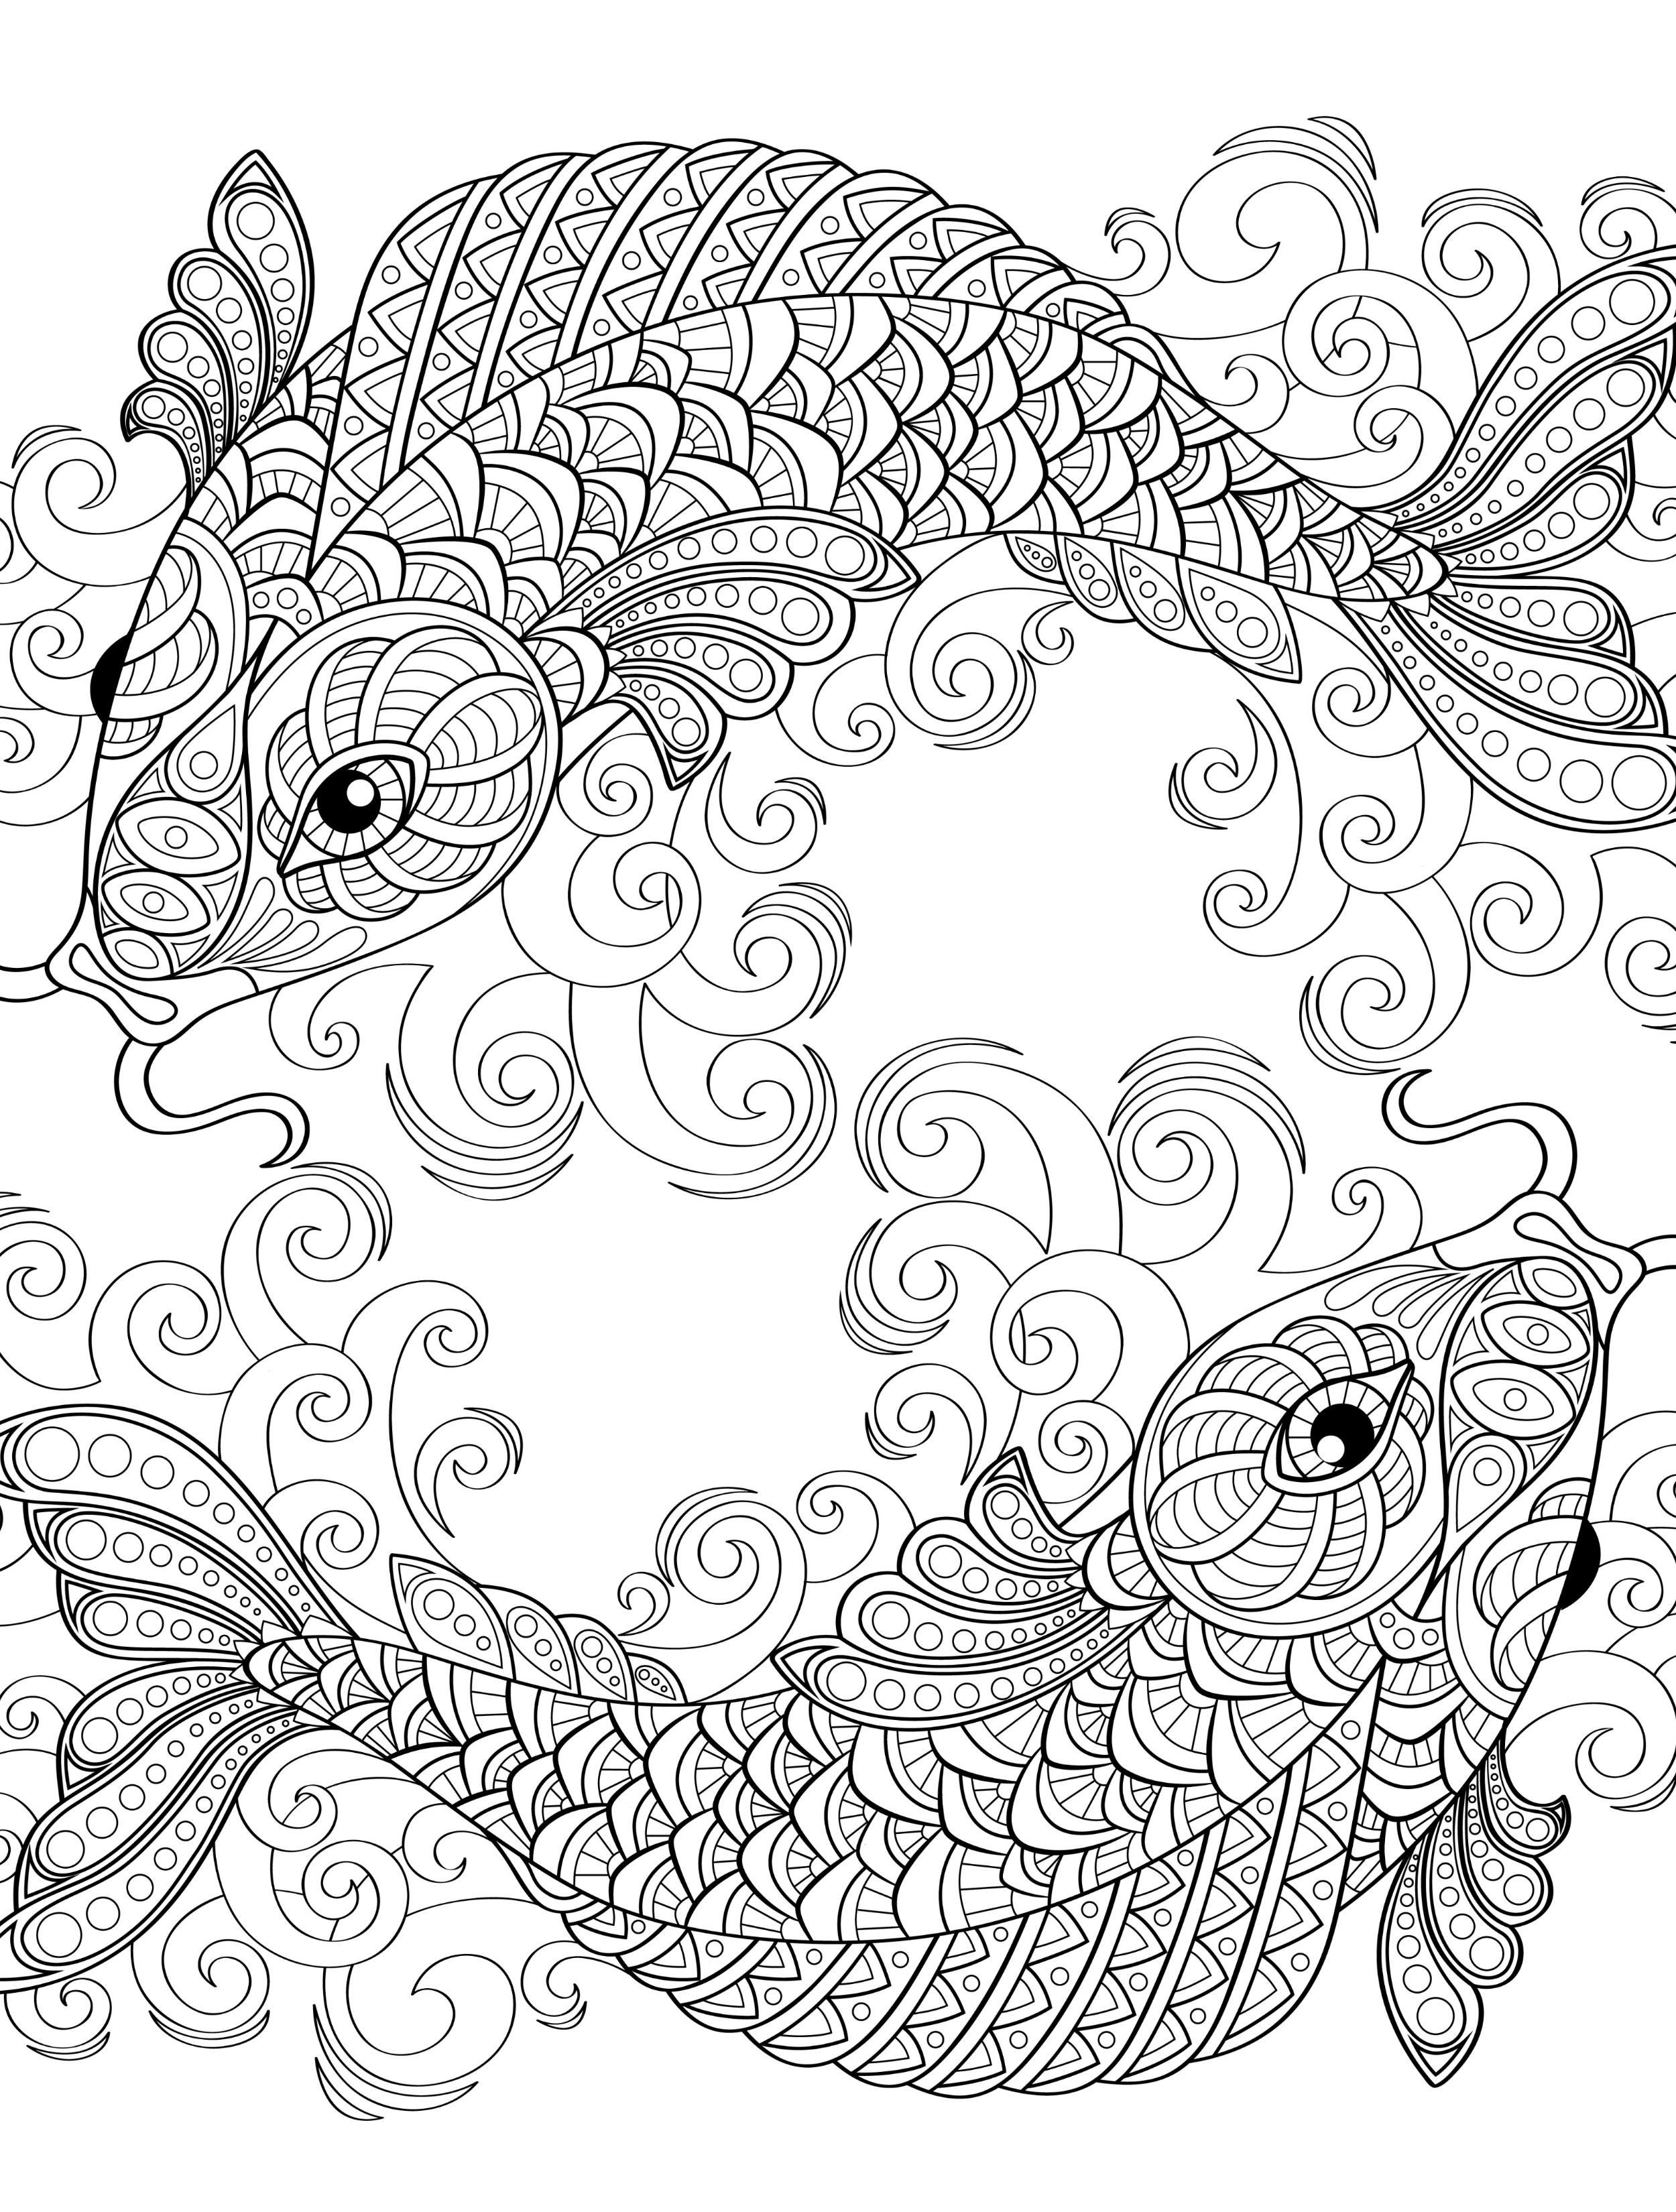 Koi Fish Coloring Page Skull Coloring Pages Fish Coloring Page